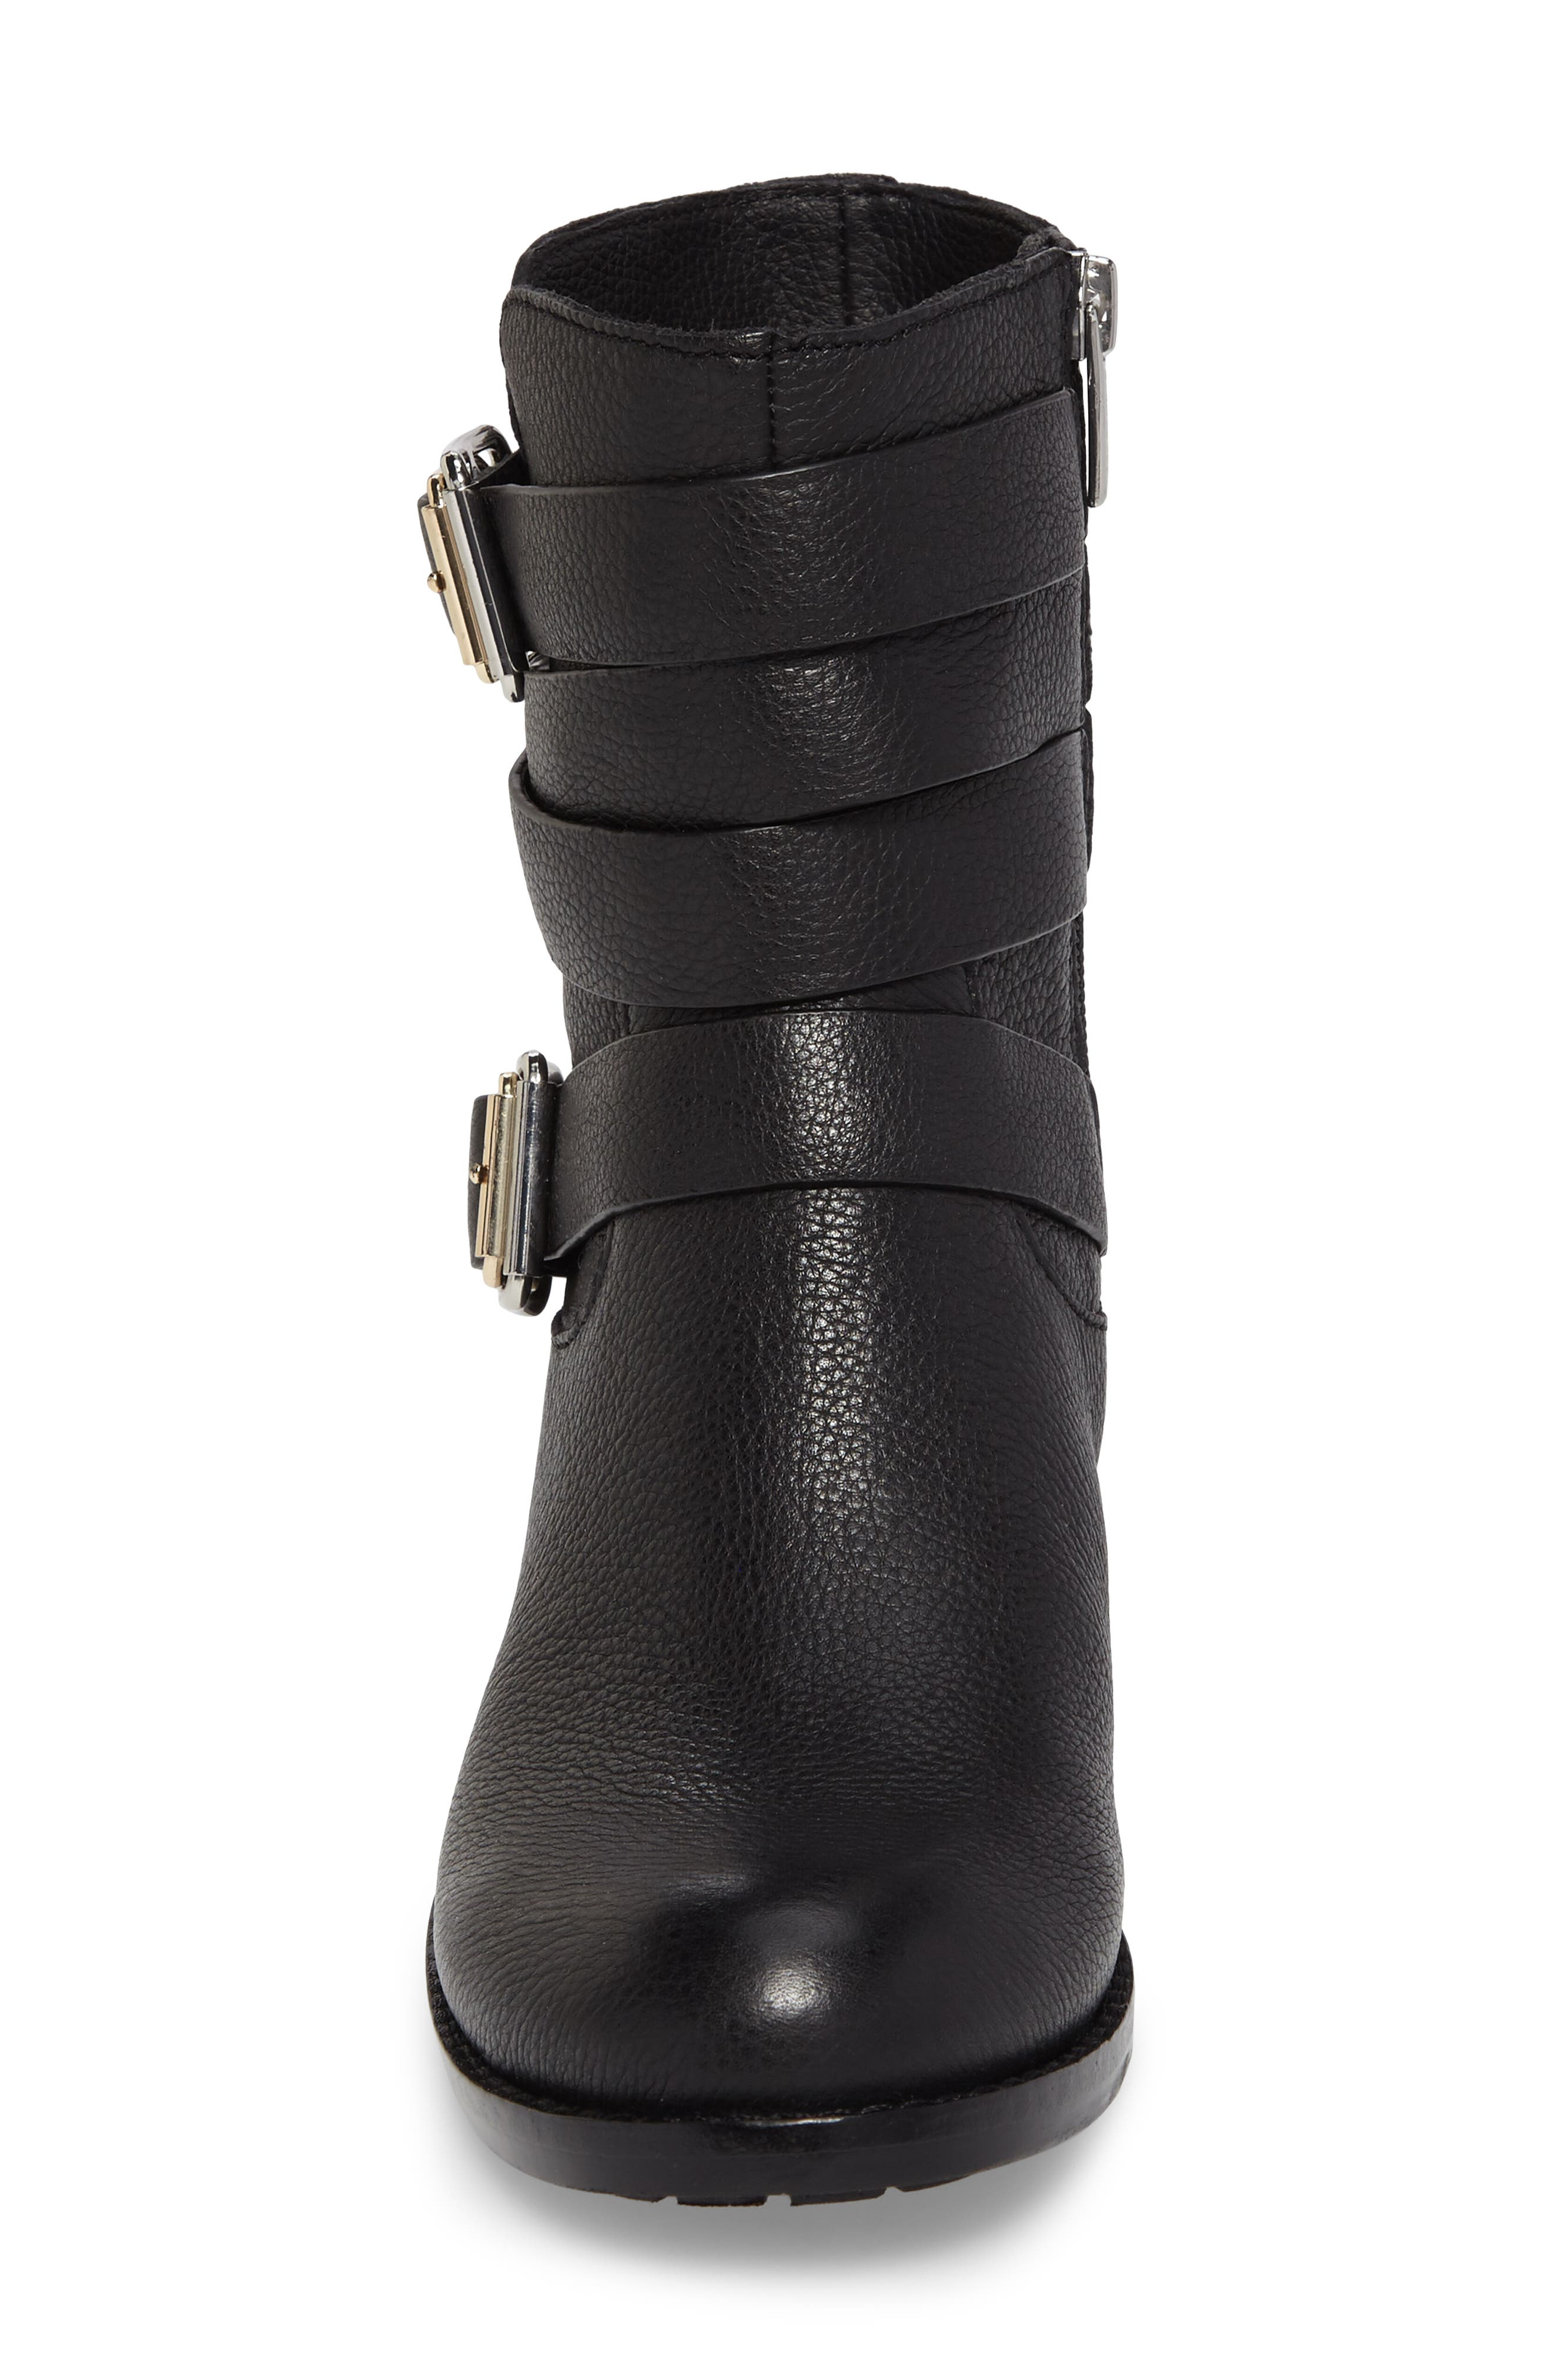 Webey Boot,                             Alternate thumbnail 4, color,                             Black Leather